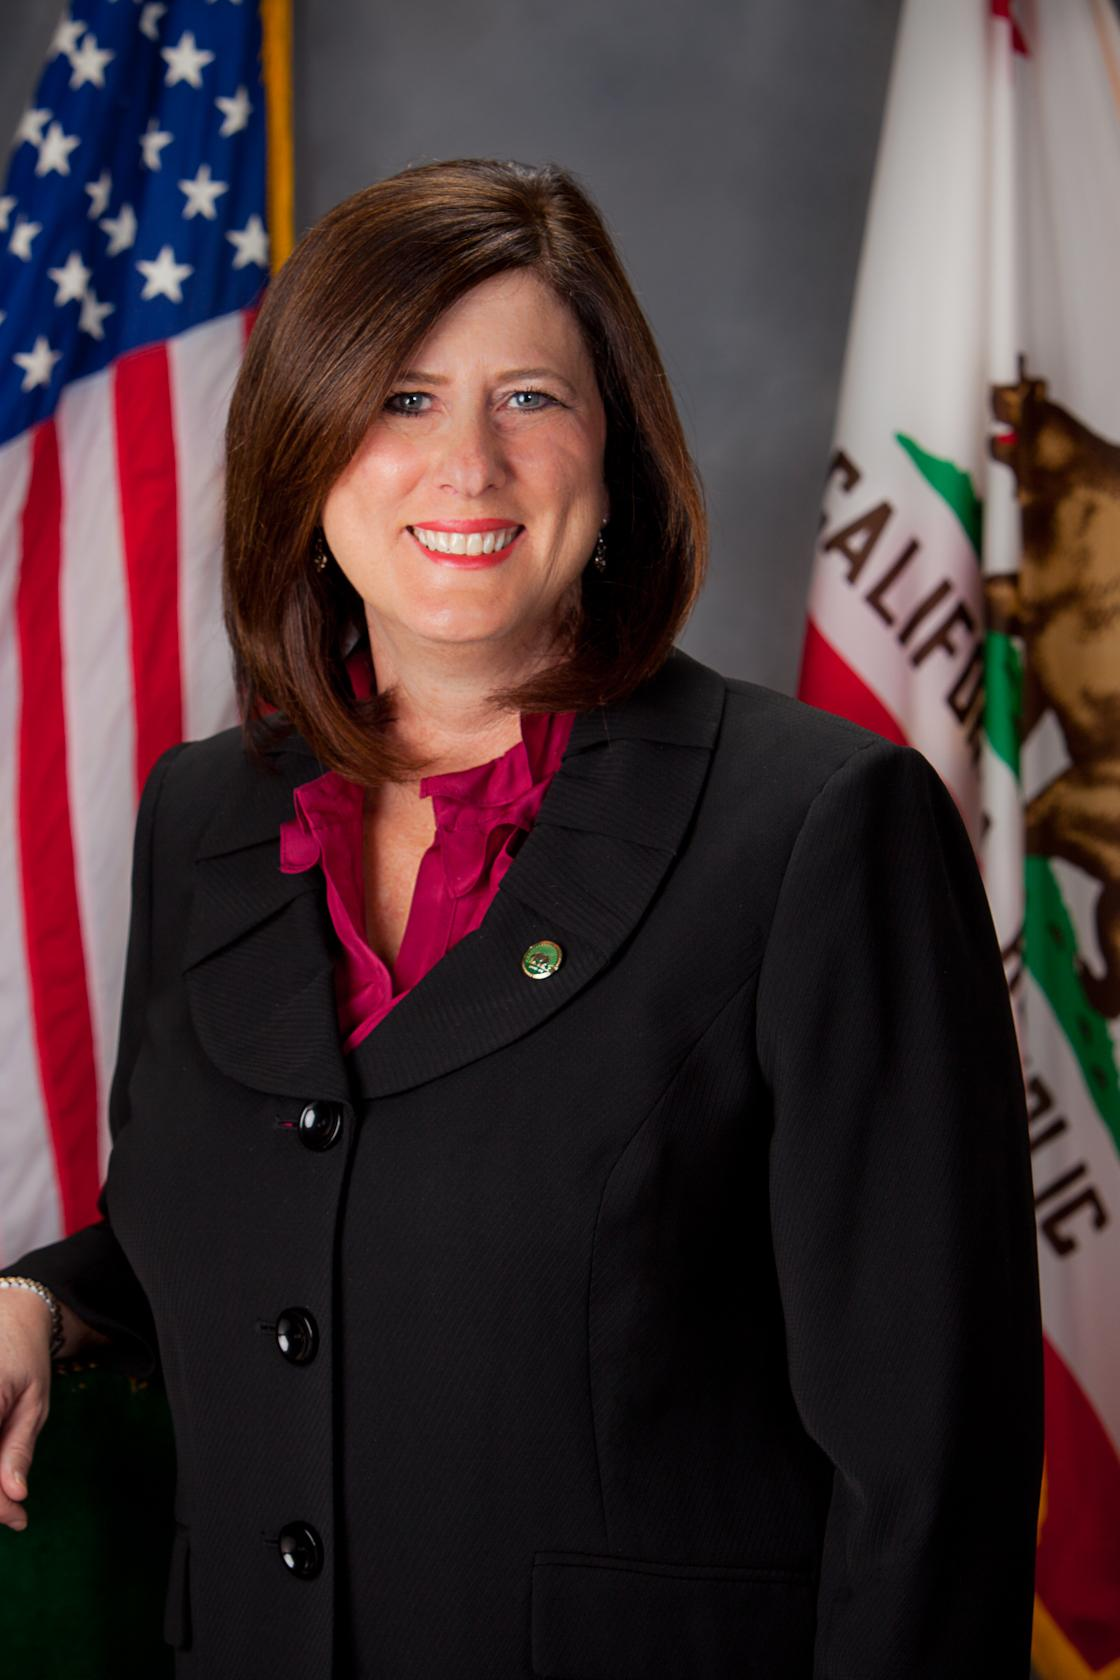 Photo of California Assembly member Susan Bonilla